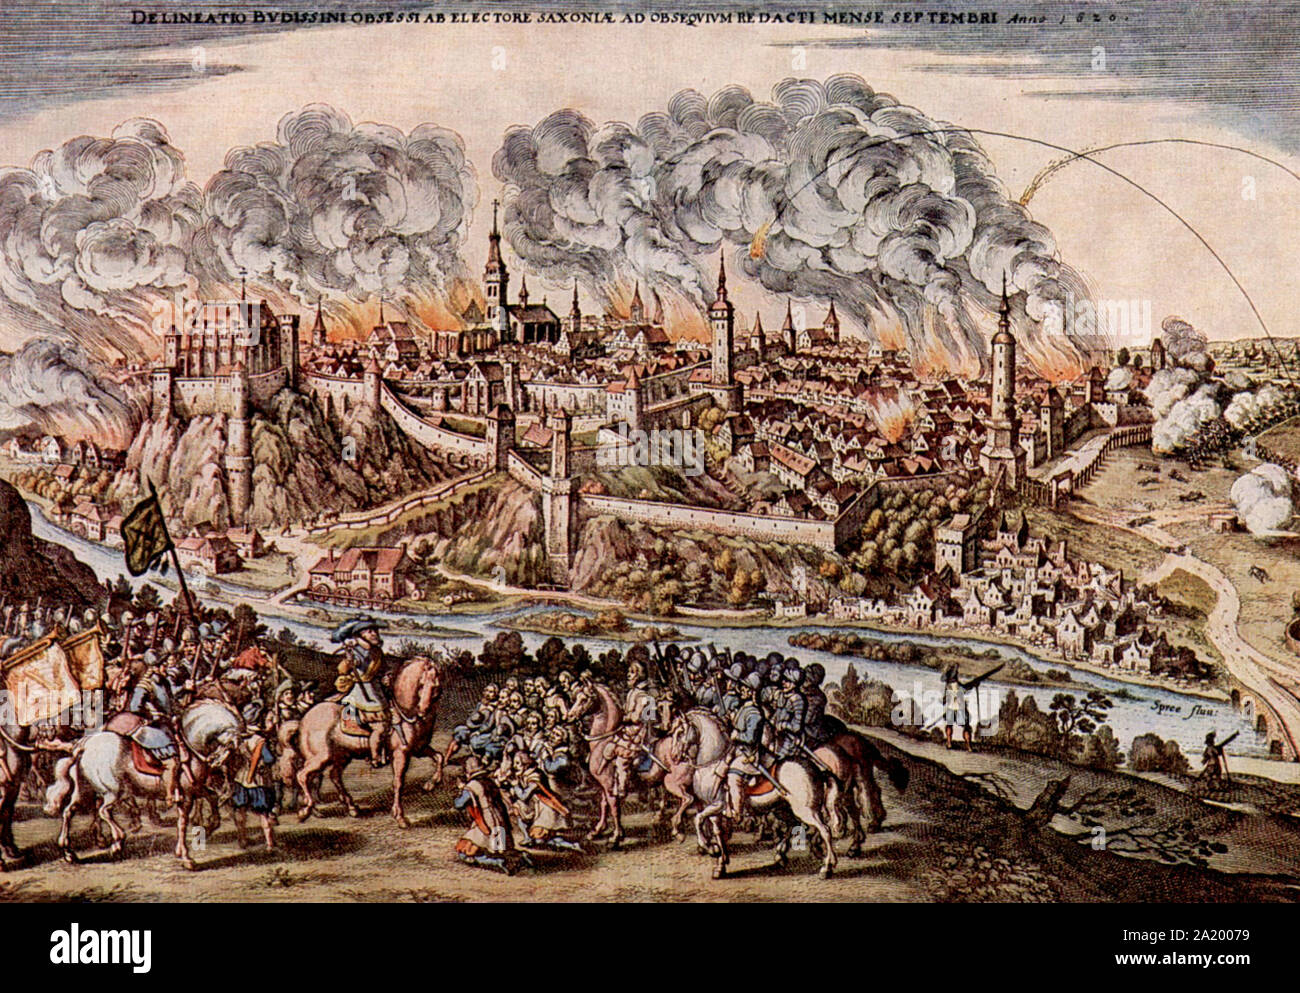 Thirty Years War, siege and capture of Bautzen by the Elector of Saxony, John George I - Matthaus Merian Stock Photo